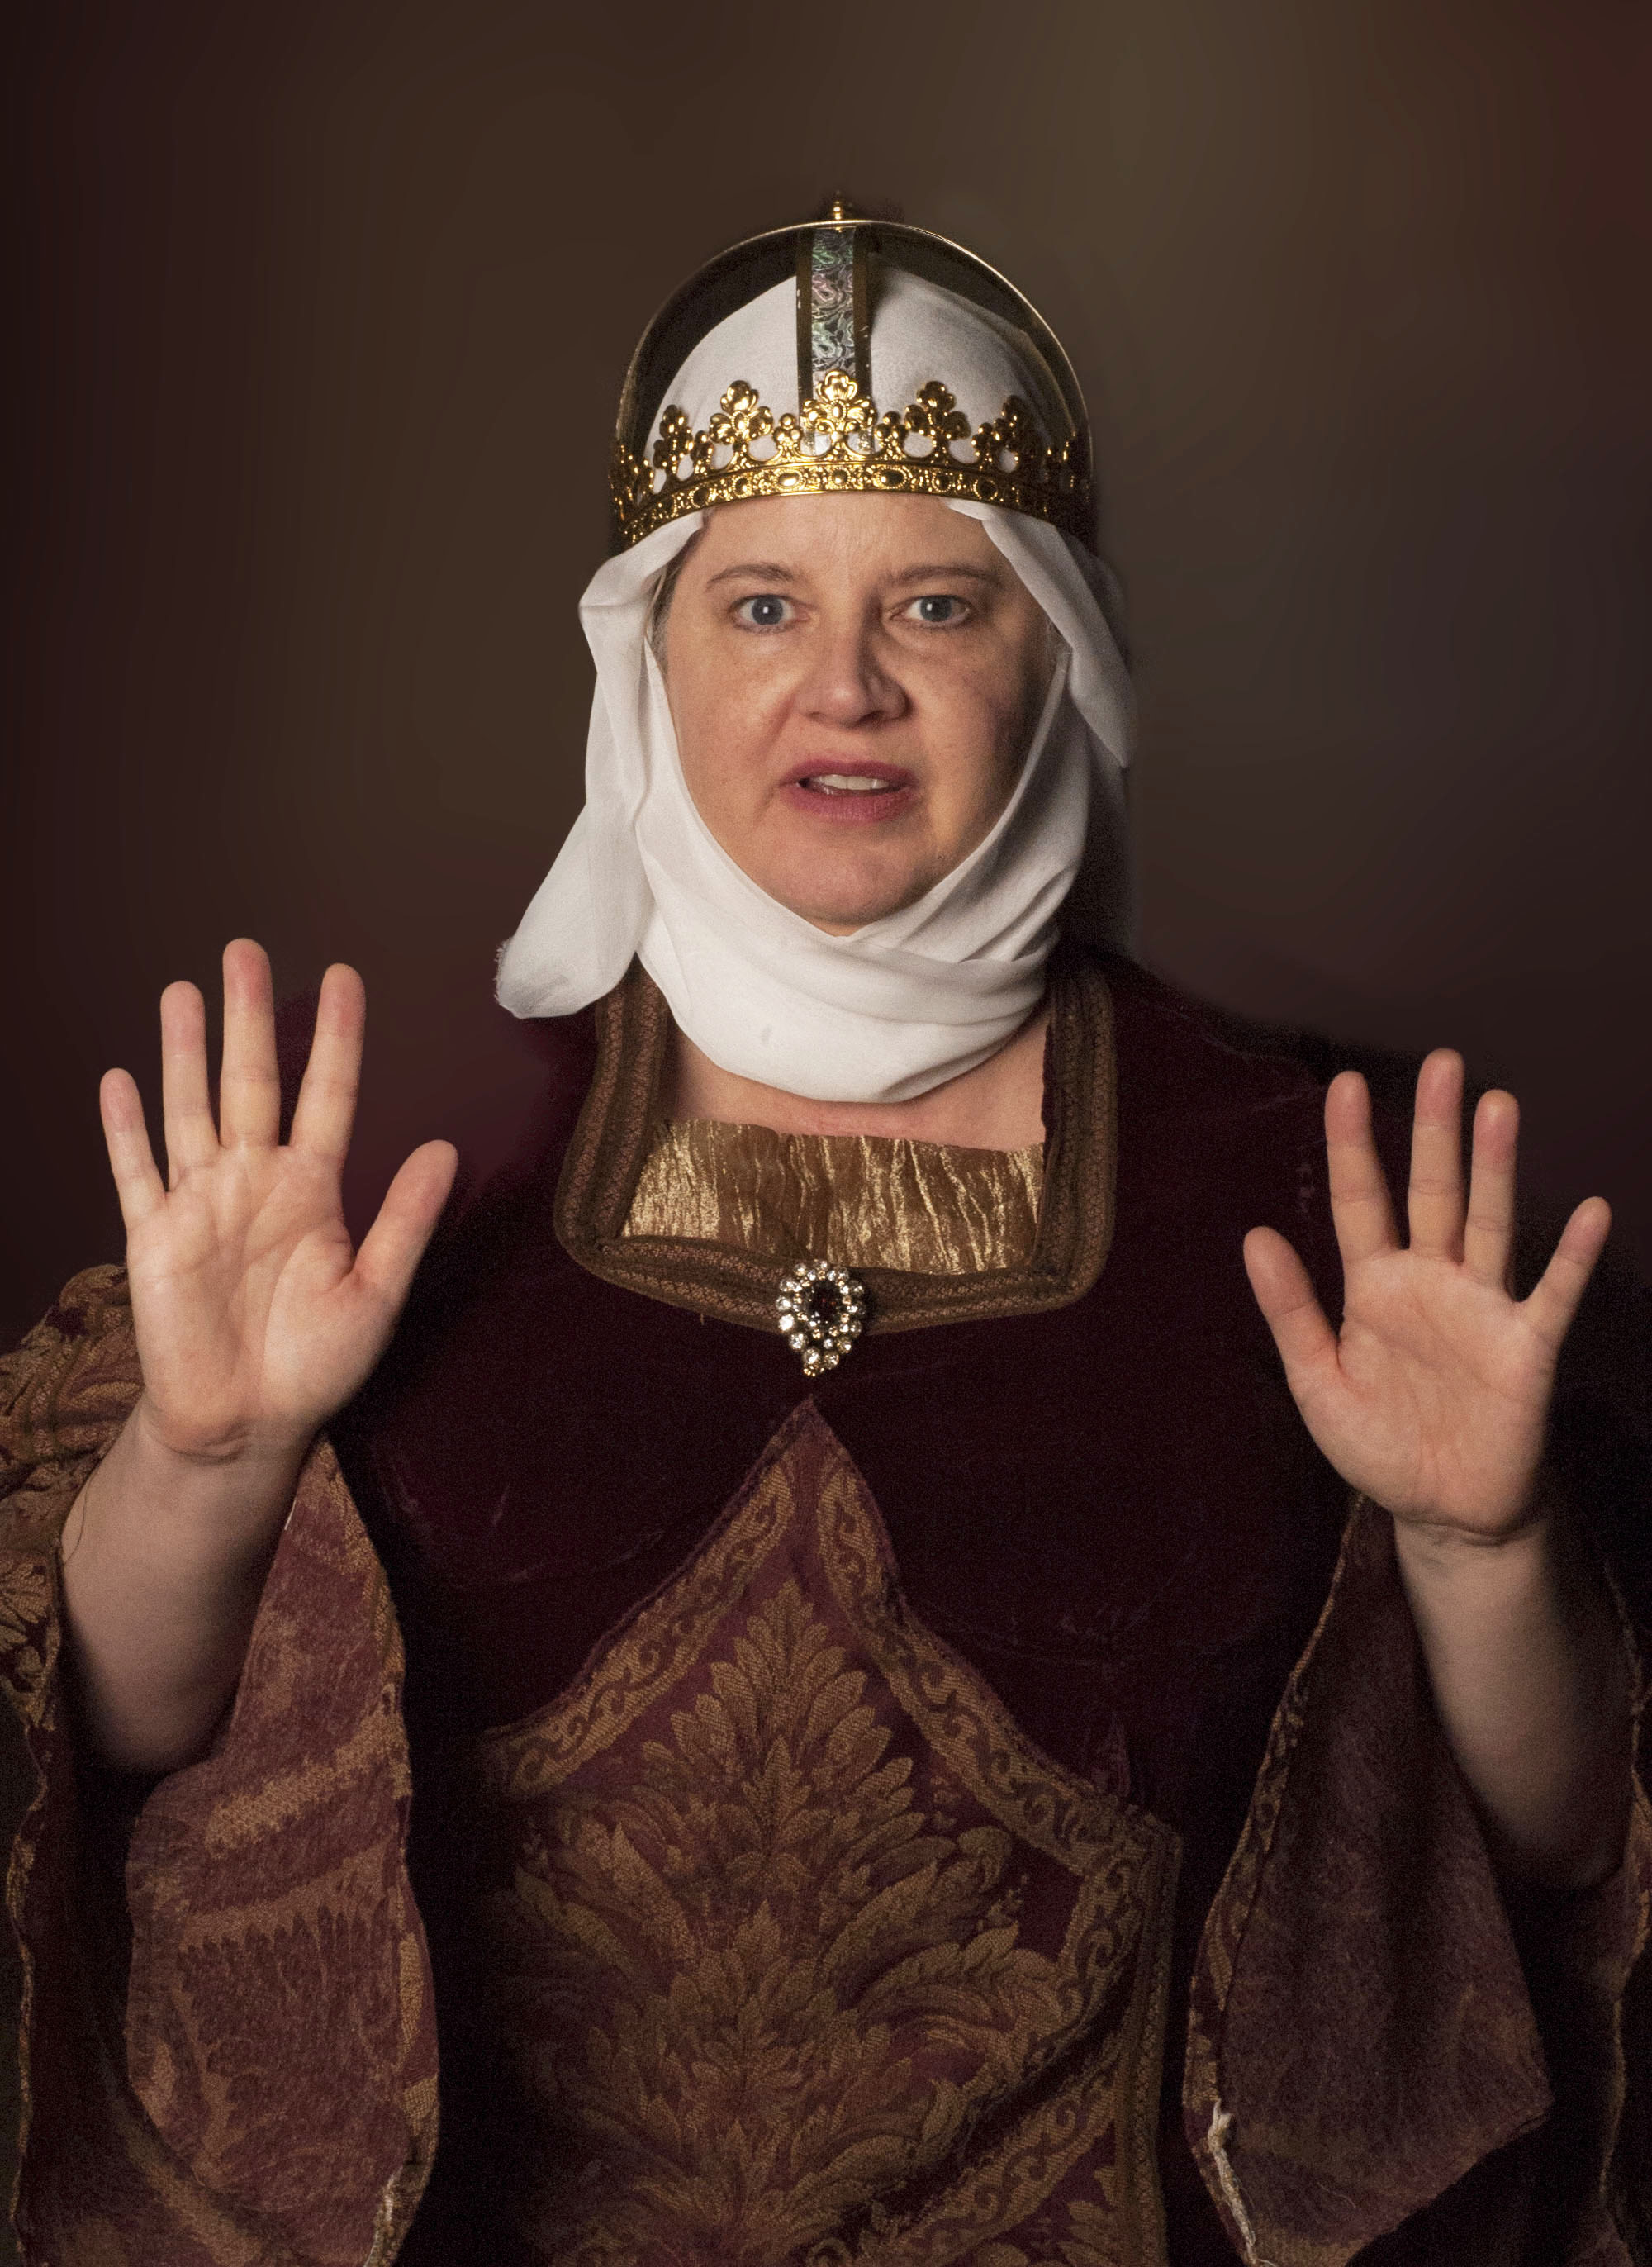 Woman in Queenly Spanish Garb 2.jpg